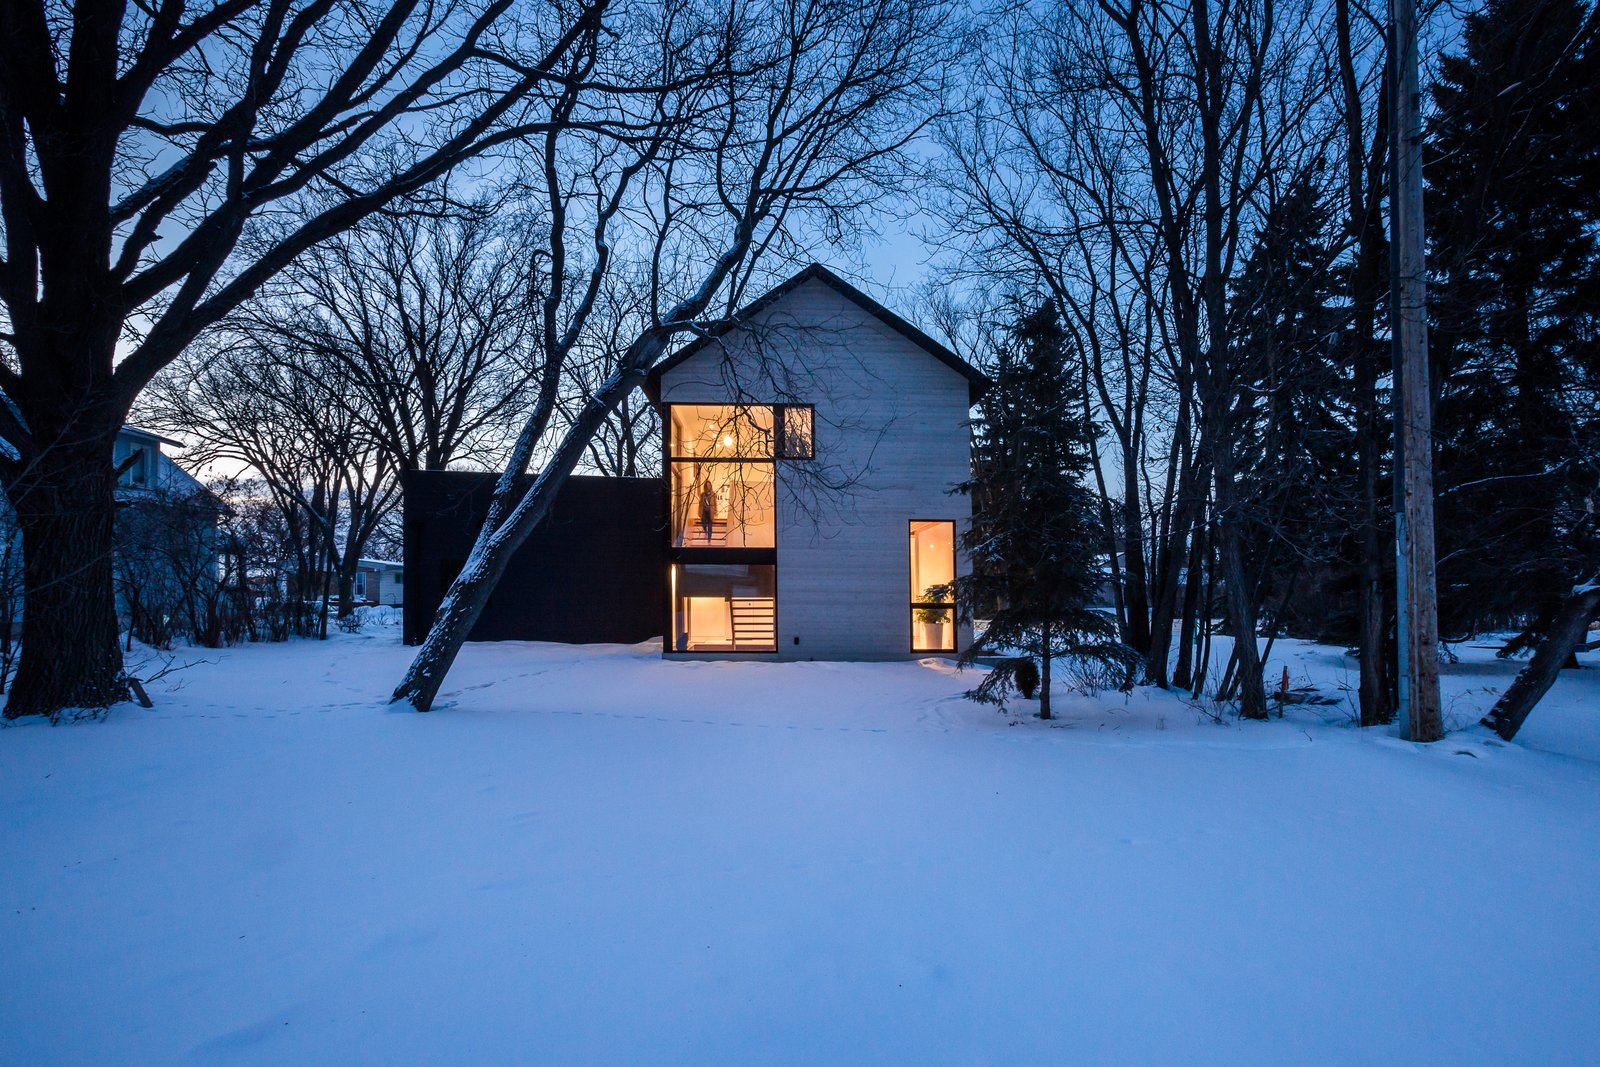 Exterior, Flat RoofLine, House Building Type, Wood Siding Material, and Gable RoofLine Duerksen now runs his own architecture firm out of the home.  Best Photos from An Intern Architect Builds a Home For His Growing Family on a Strict Budget